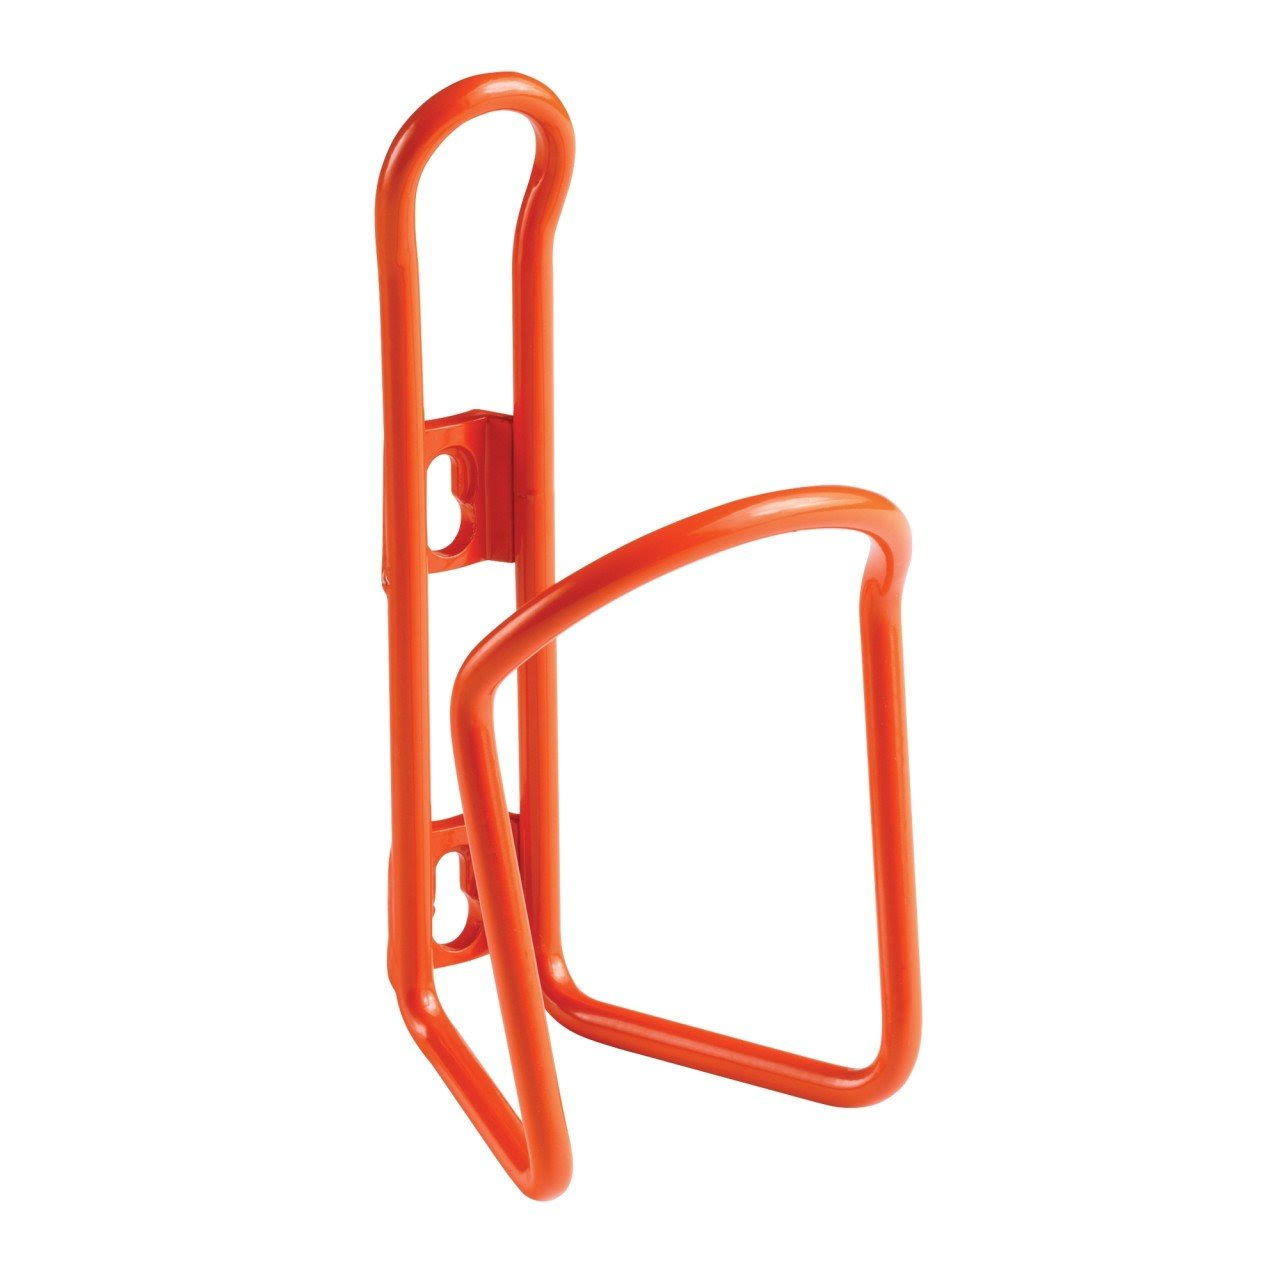 Bontrager Bottle Cage - Orange, 6mm